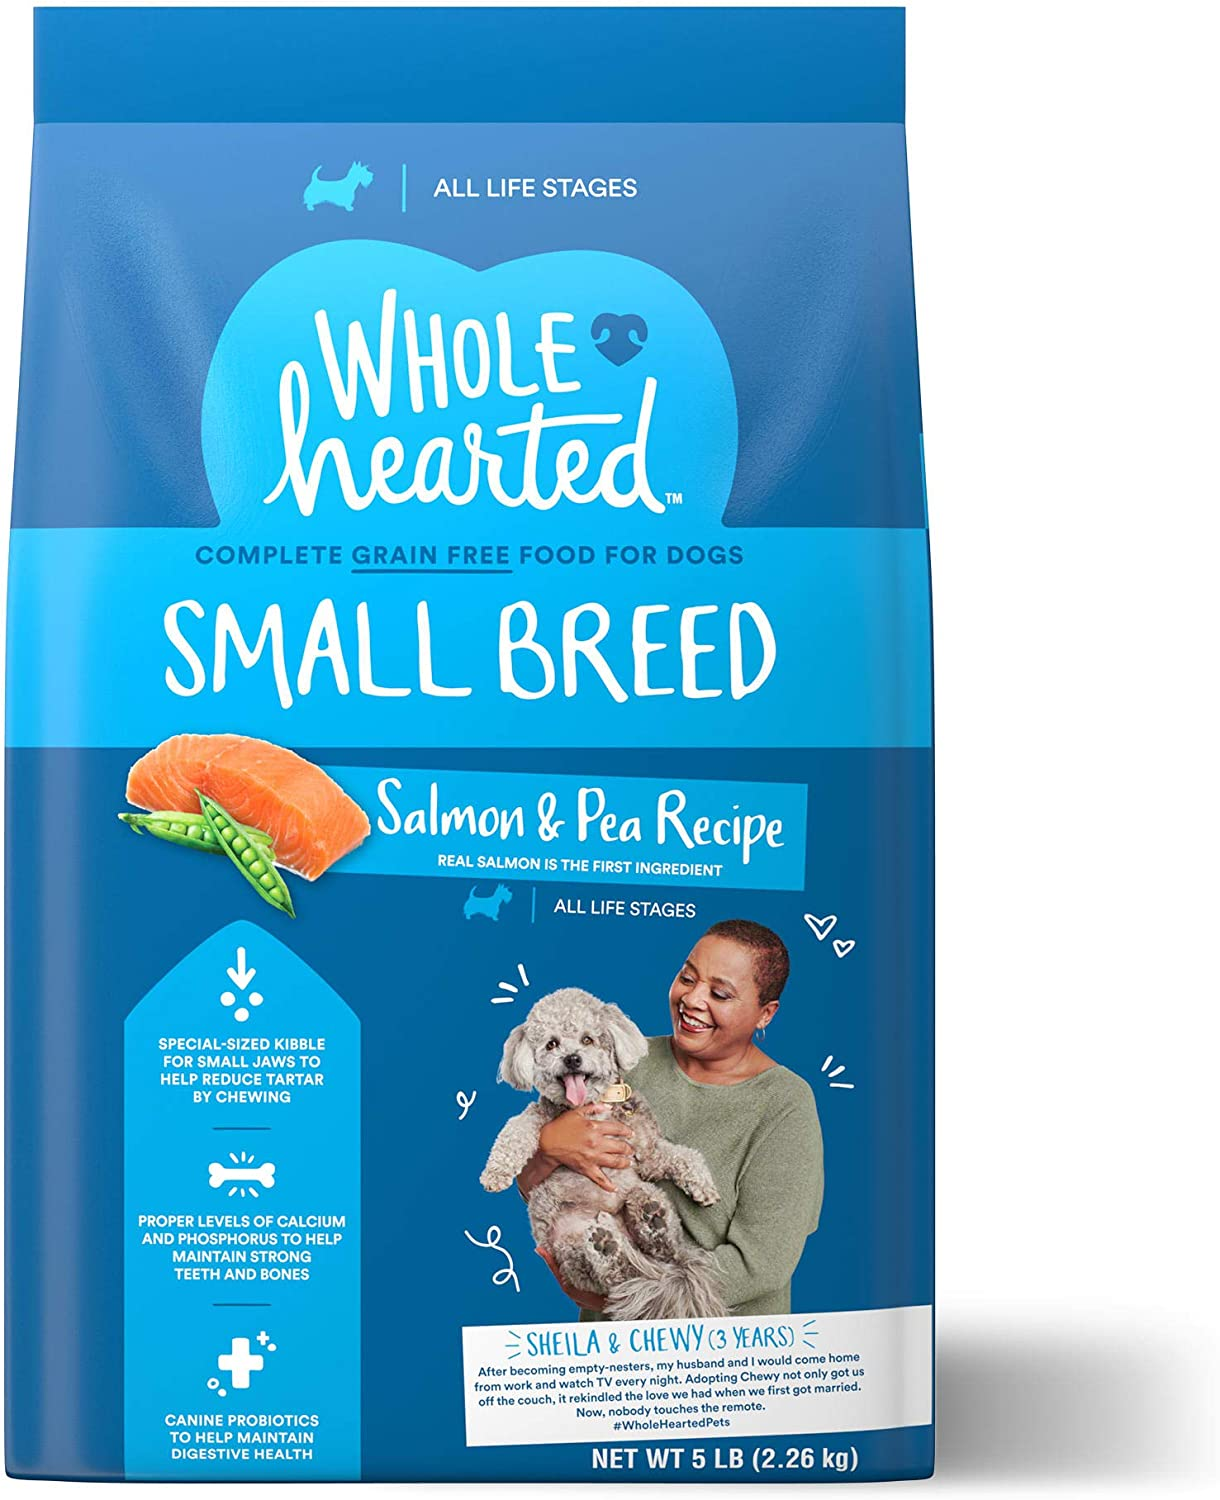 WholeHearted Grain Free Small Breed Salmon and Pea Recipe Dry Dog Food for All Life Stages, 5 lbs.